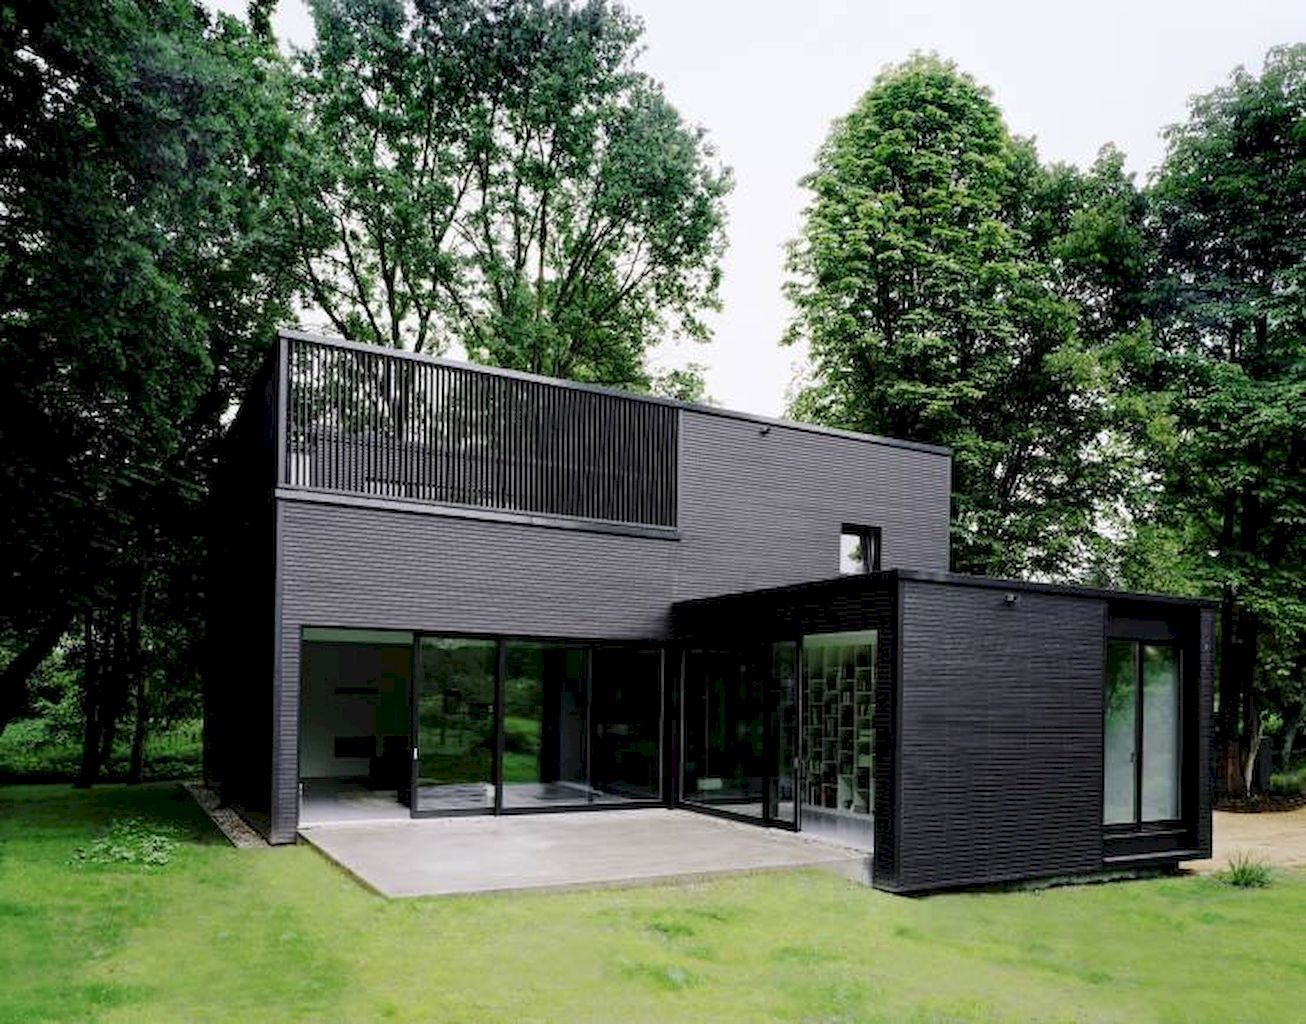 Best Kitchen Gallery: 65 Gorgeous Shipping Container House Ideas On A Budget Budgeting of Shipping Container Ideas on rachelxblog.com